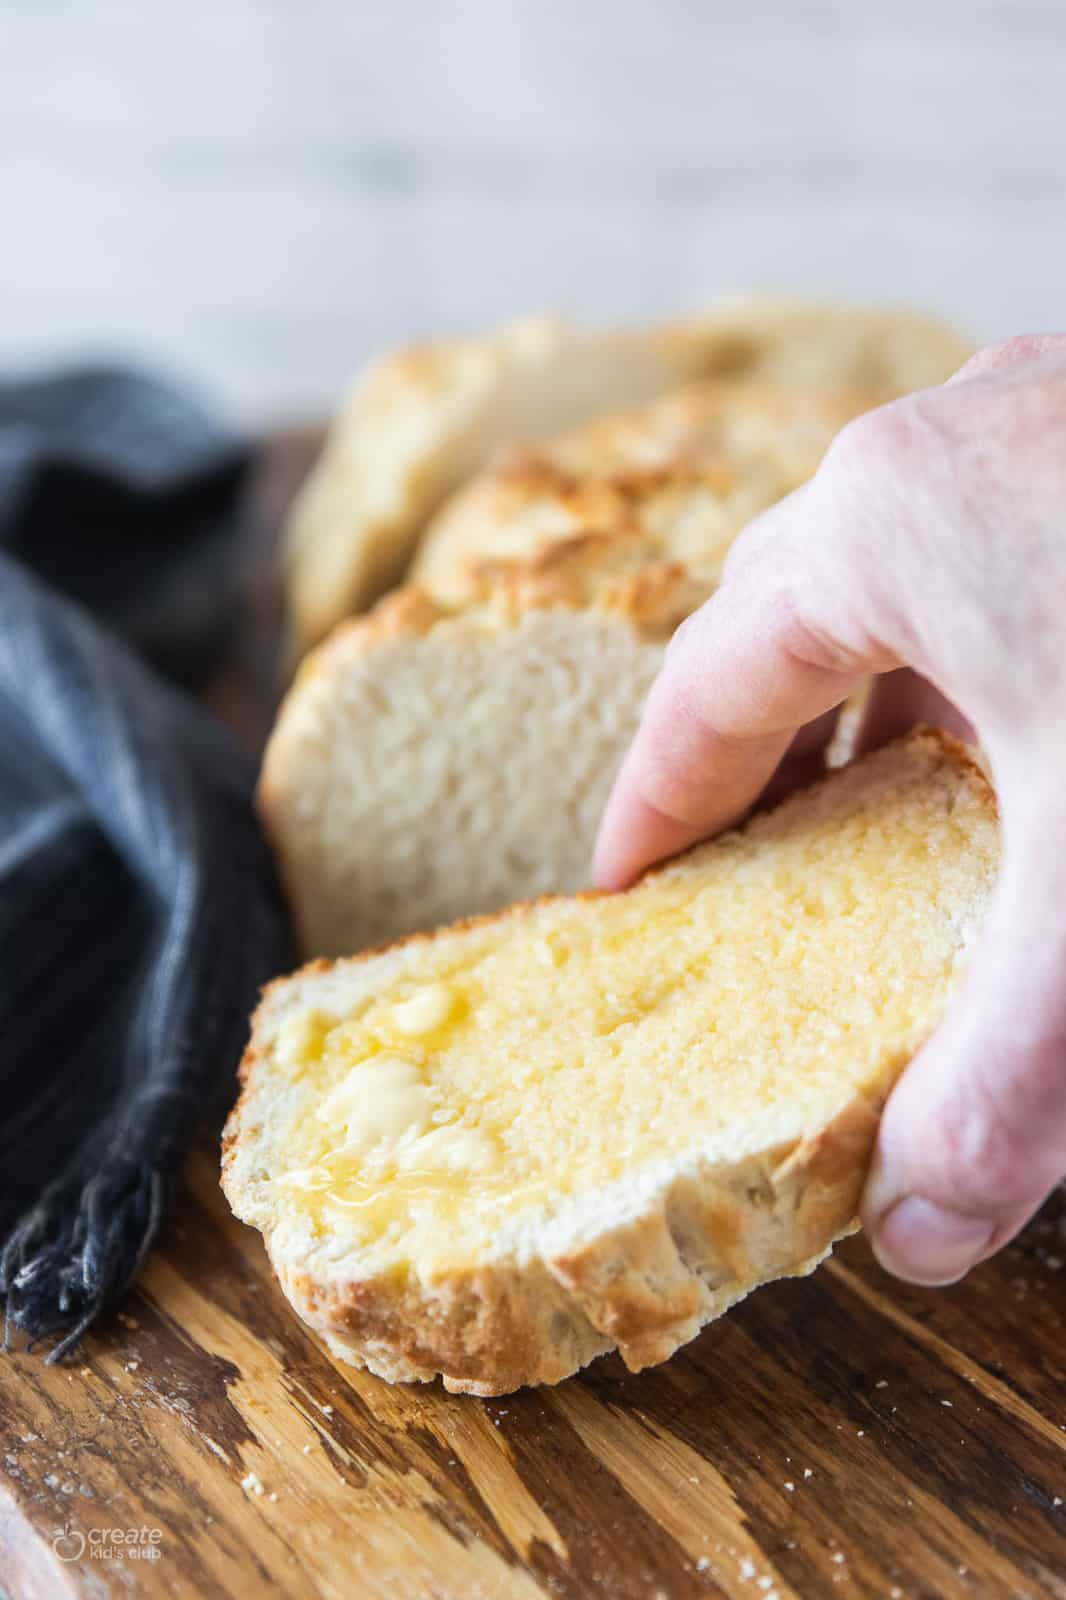 hand picking up slice of homemade bread with butter